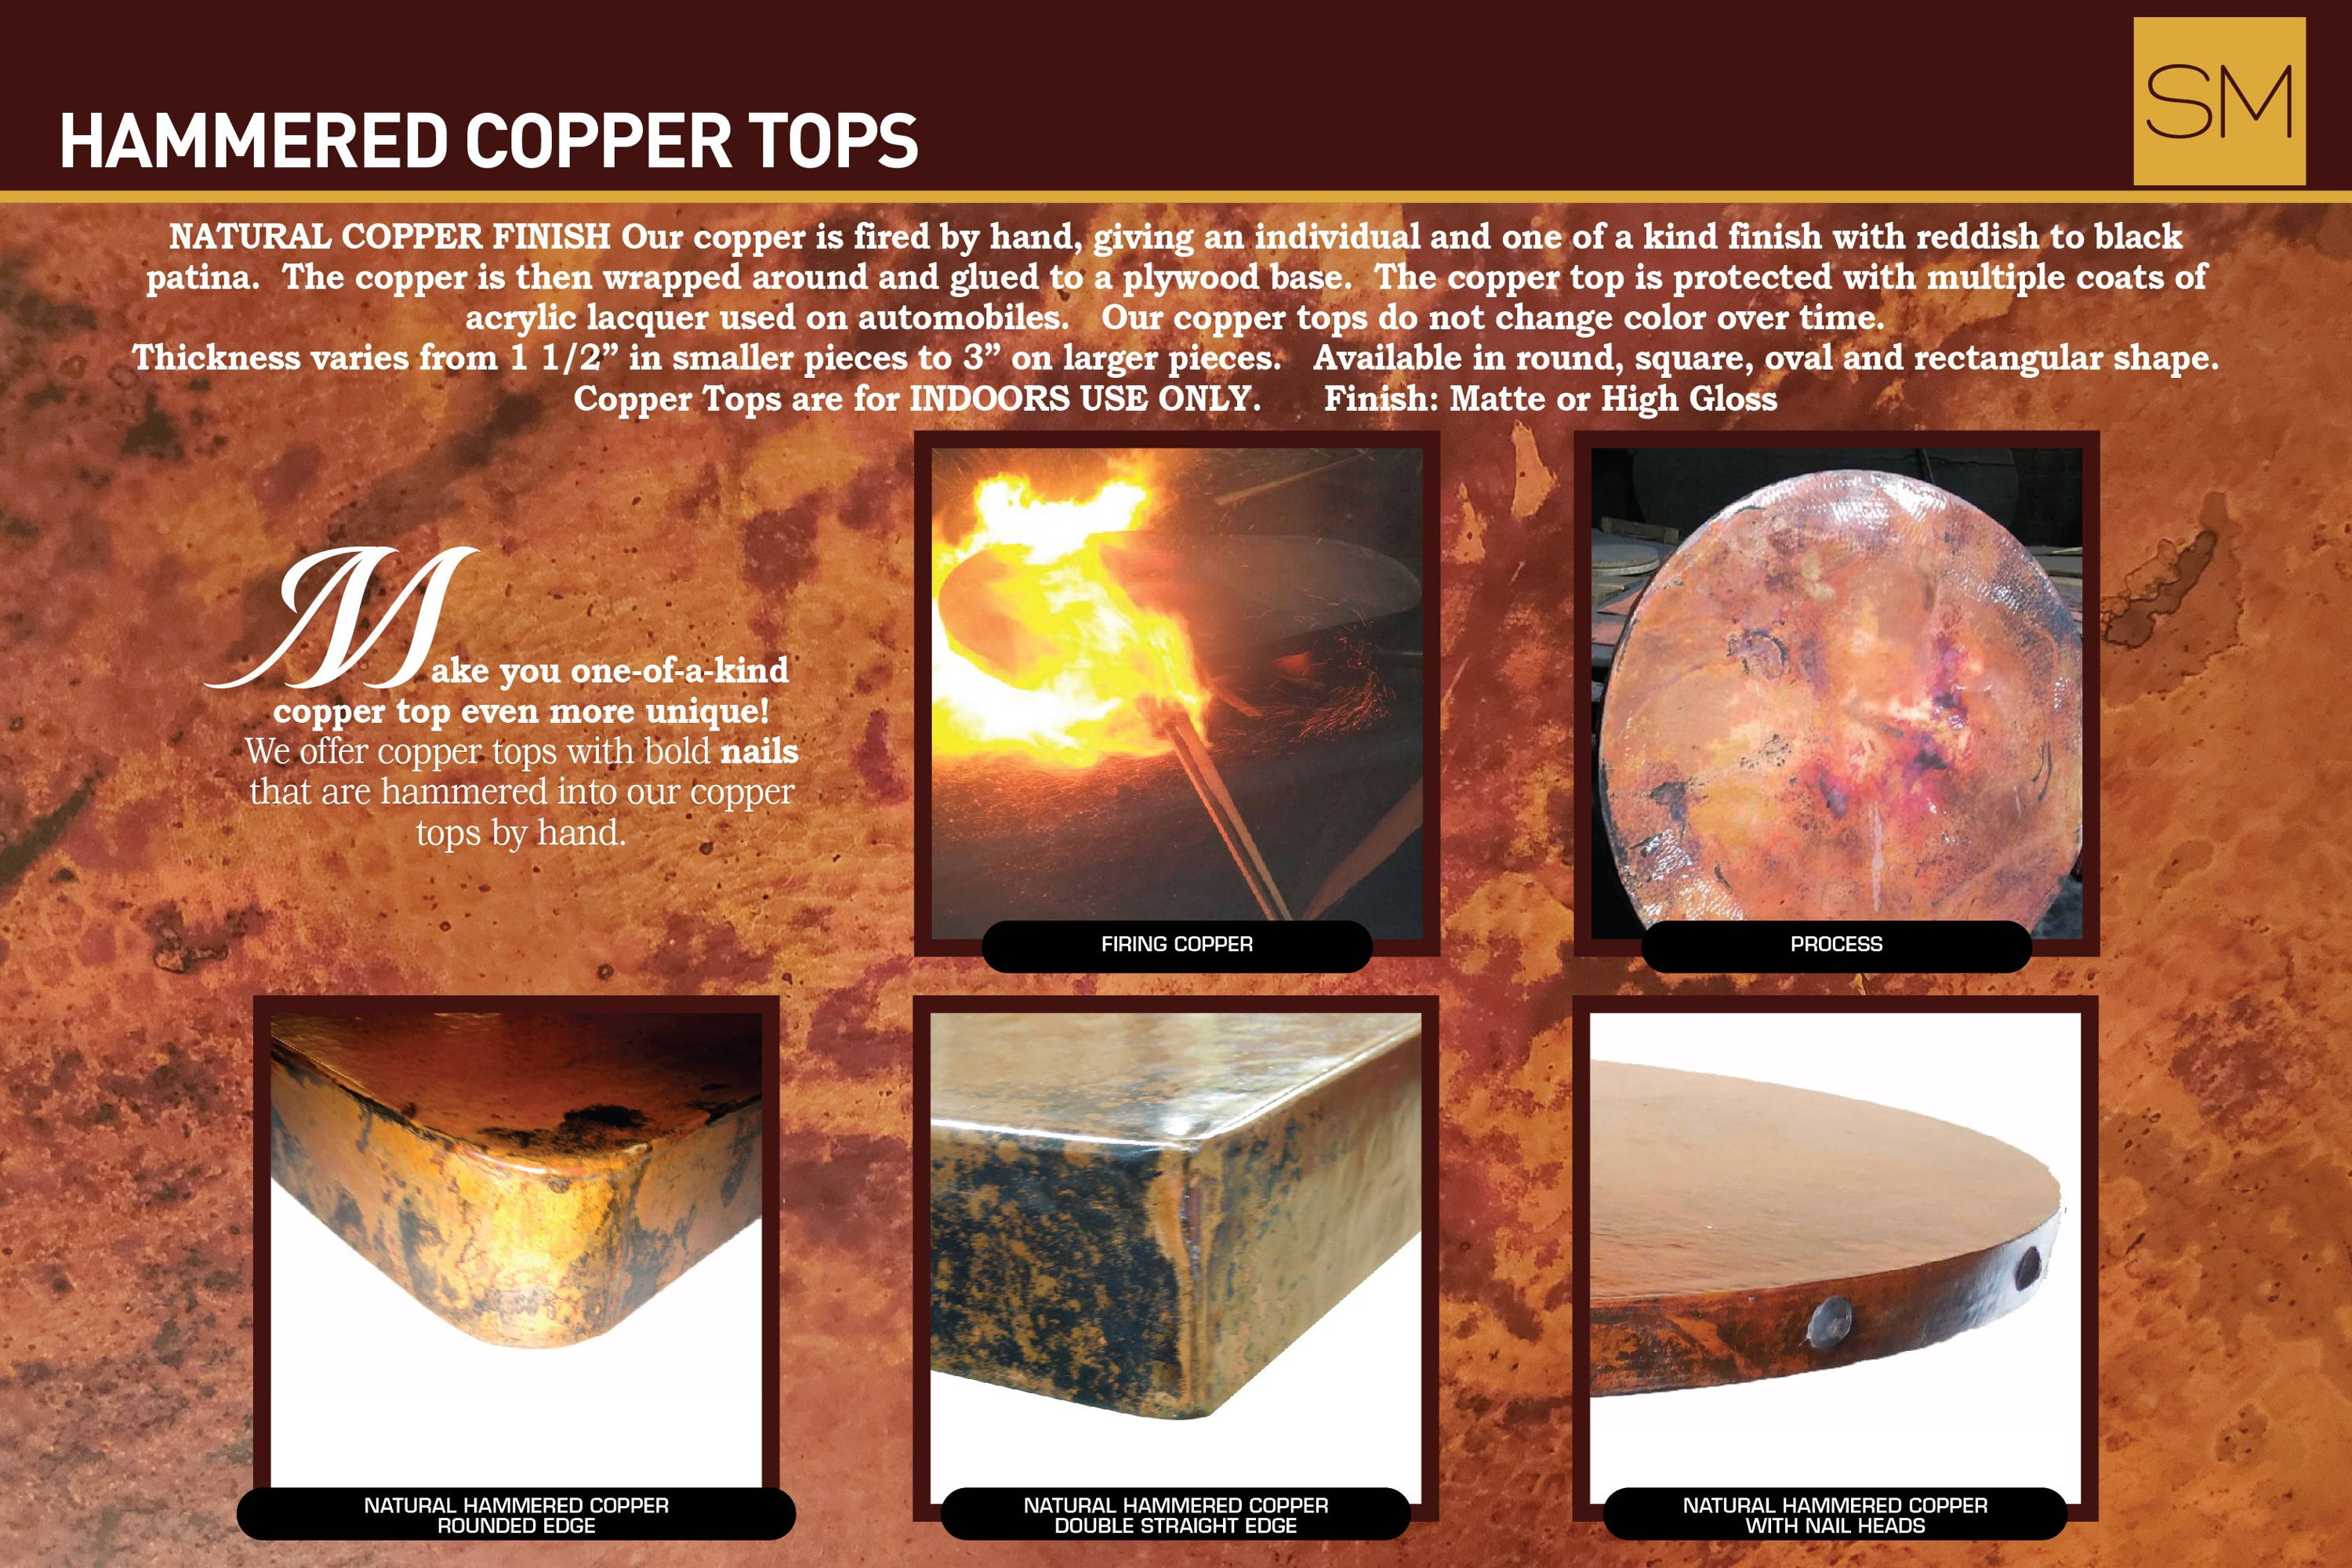 Hand hammered copper top options; natural hammered copper with rounded edge, natural hammered copper double straight edge, natural hammered copper with nail heads